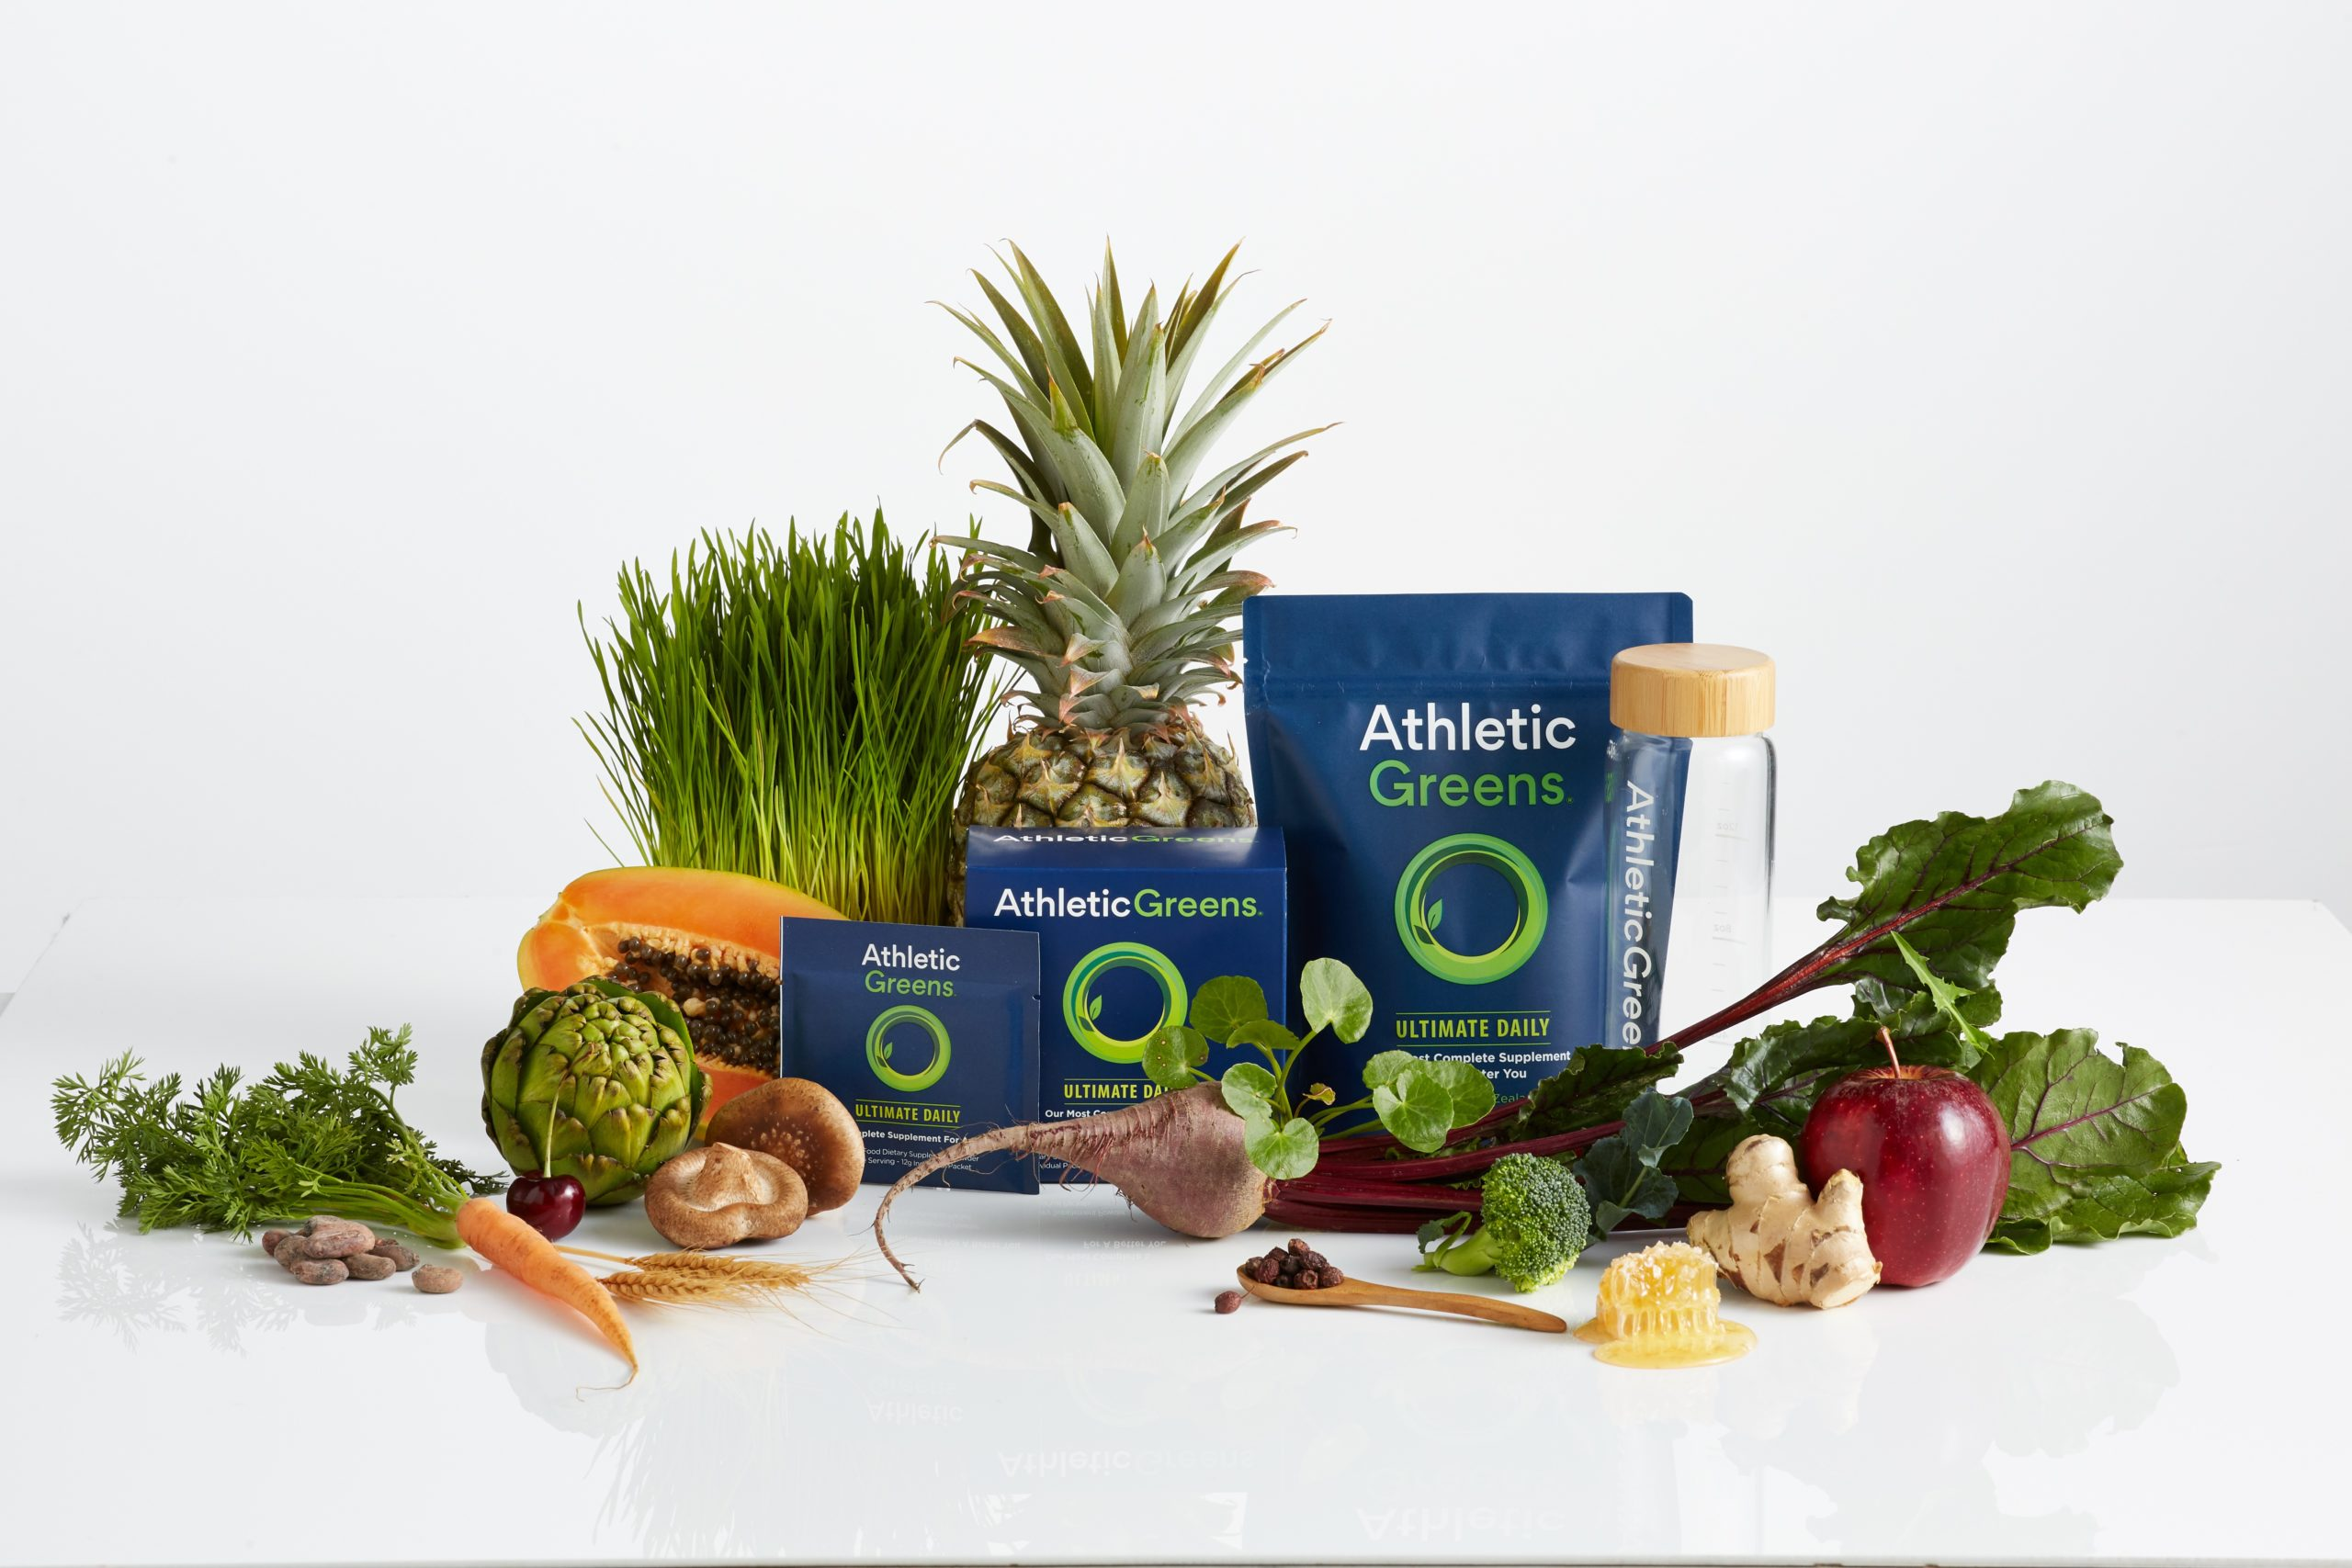 Vorschaubild: Athletic Greens - Dein tägliches All-in-One-Supplement